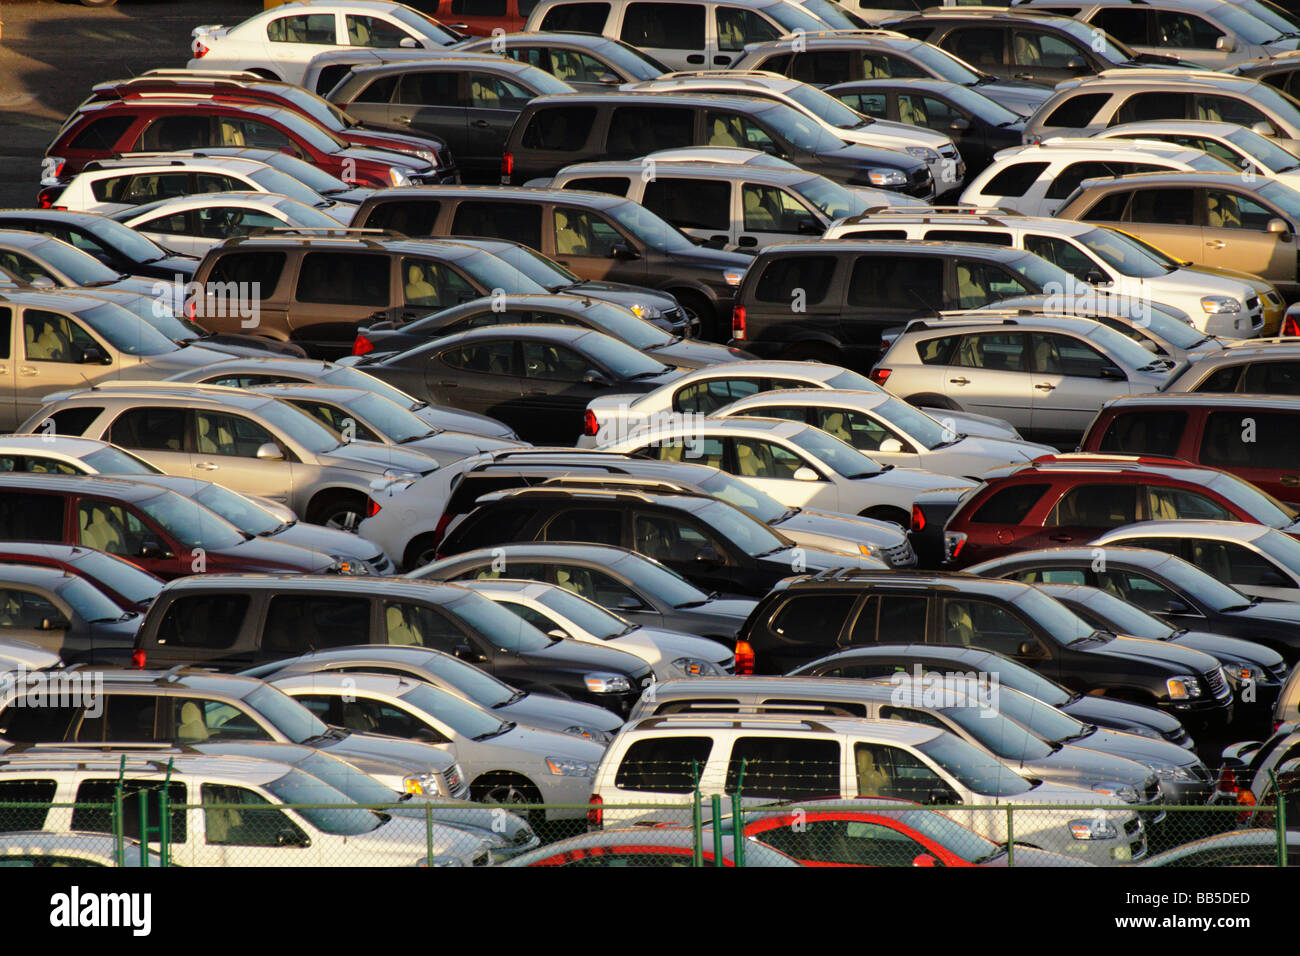 New cars waiting at harbour for shipment to dealers Honolulu Oahu Hawaii USA - Stock Image